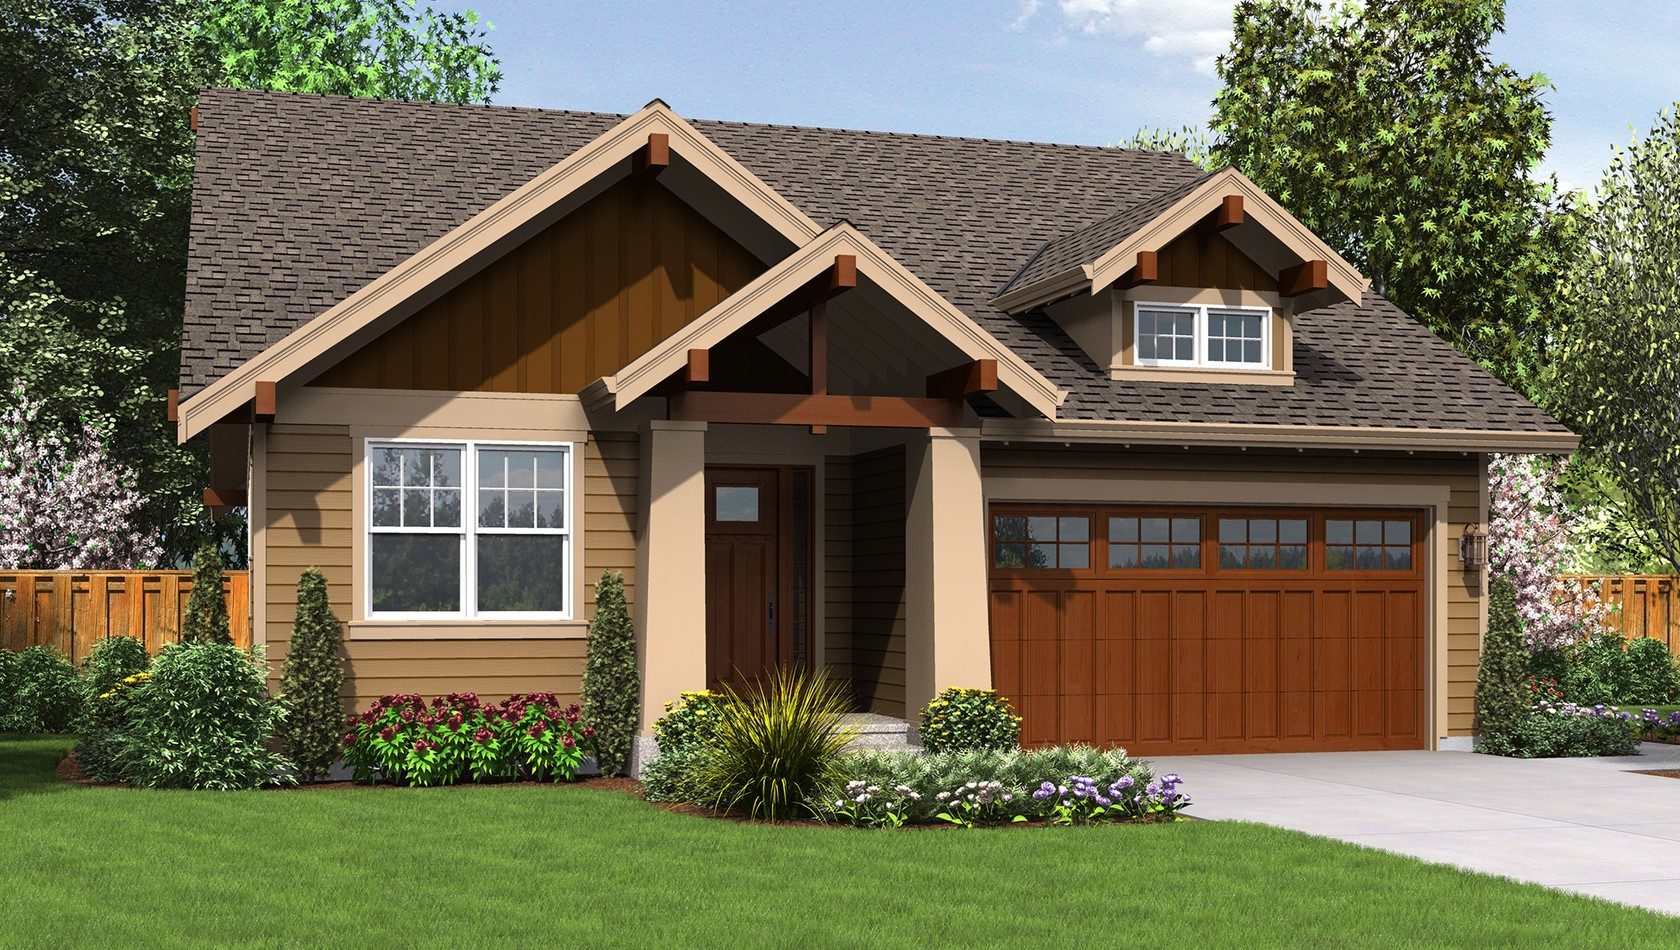 Main image for house plan 1168ES: The Espresso